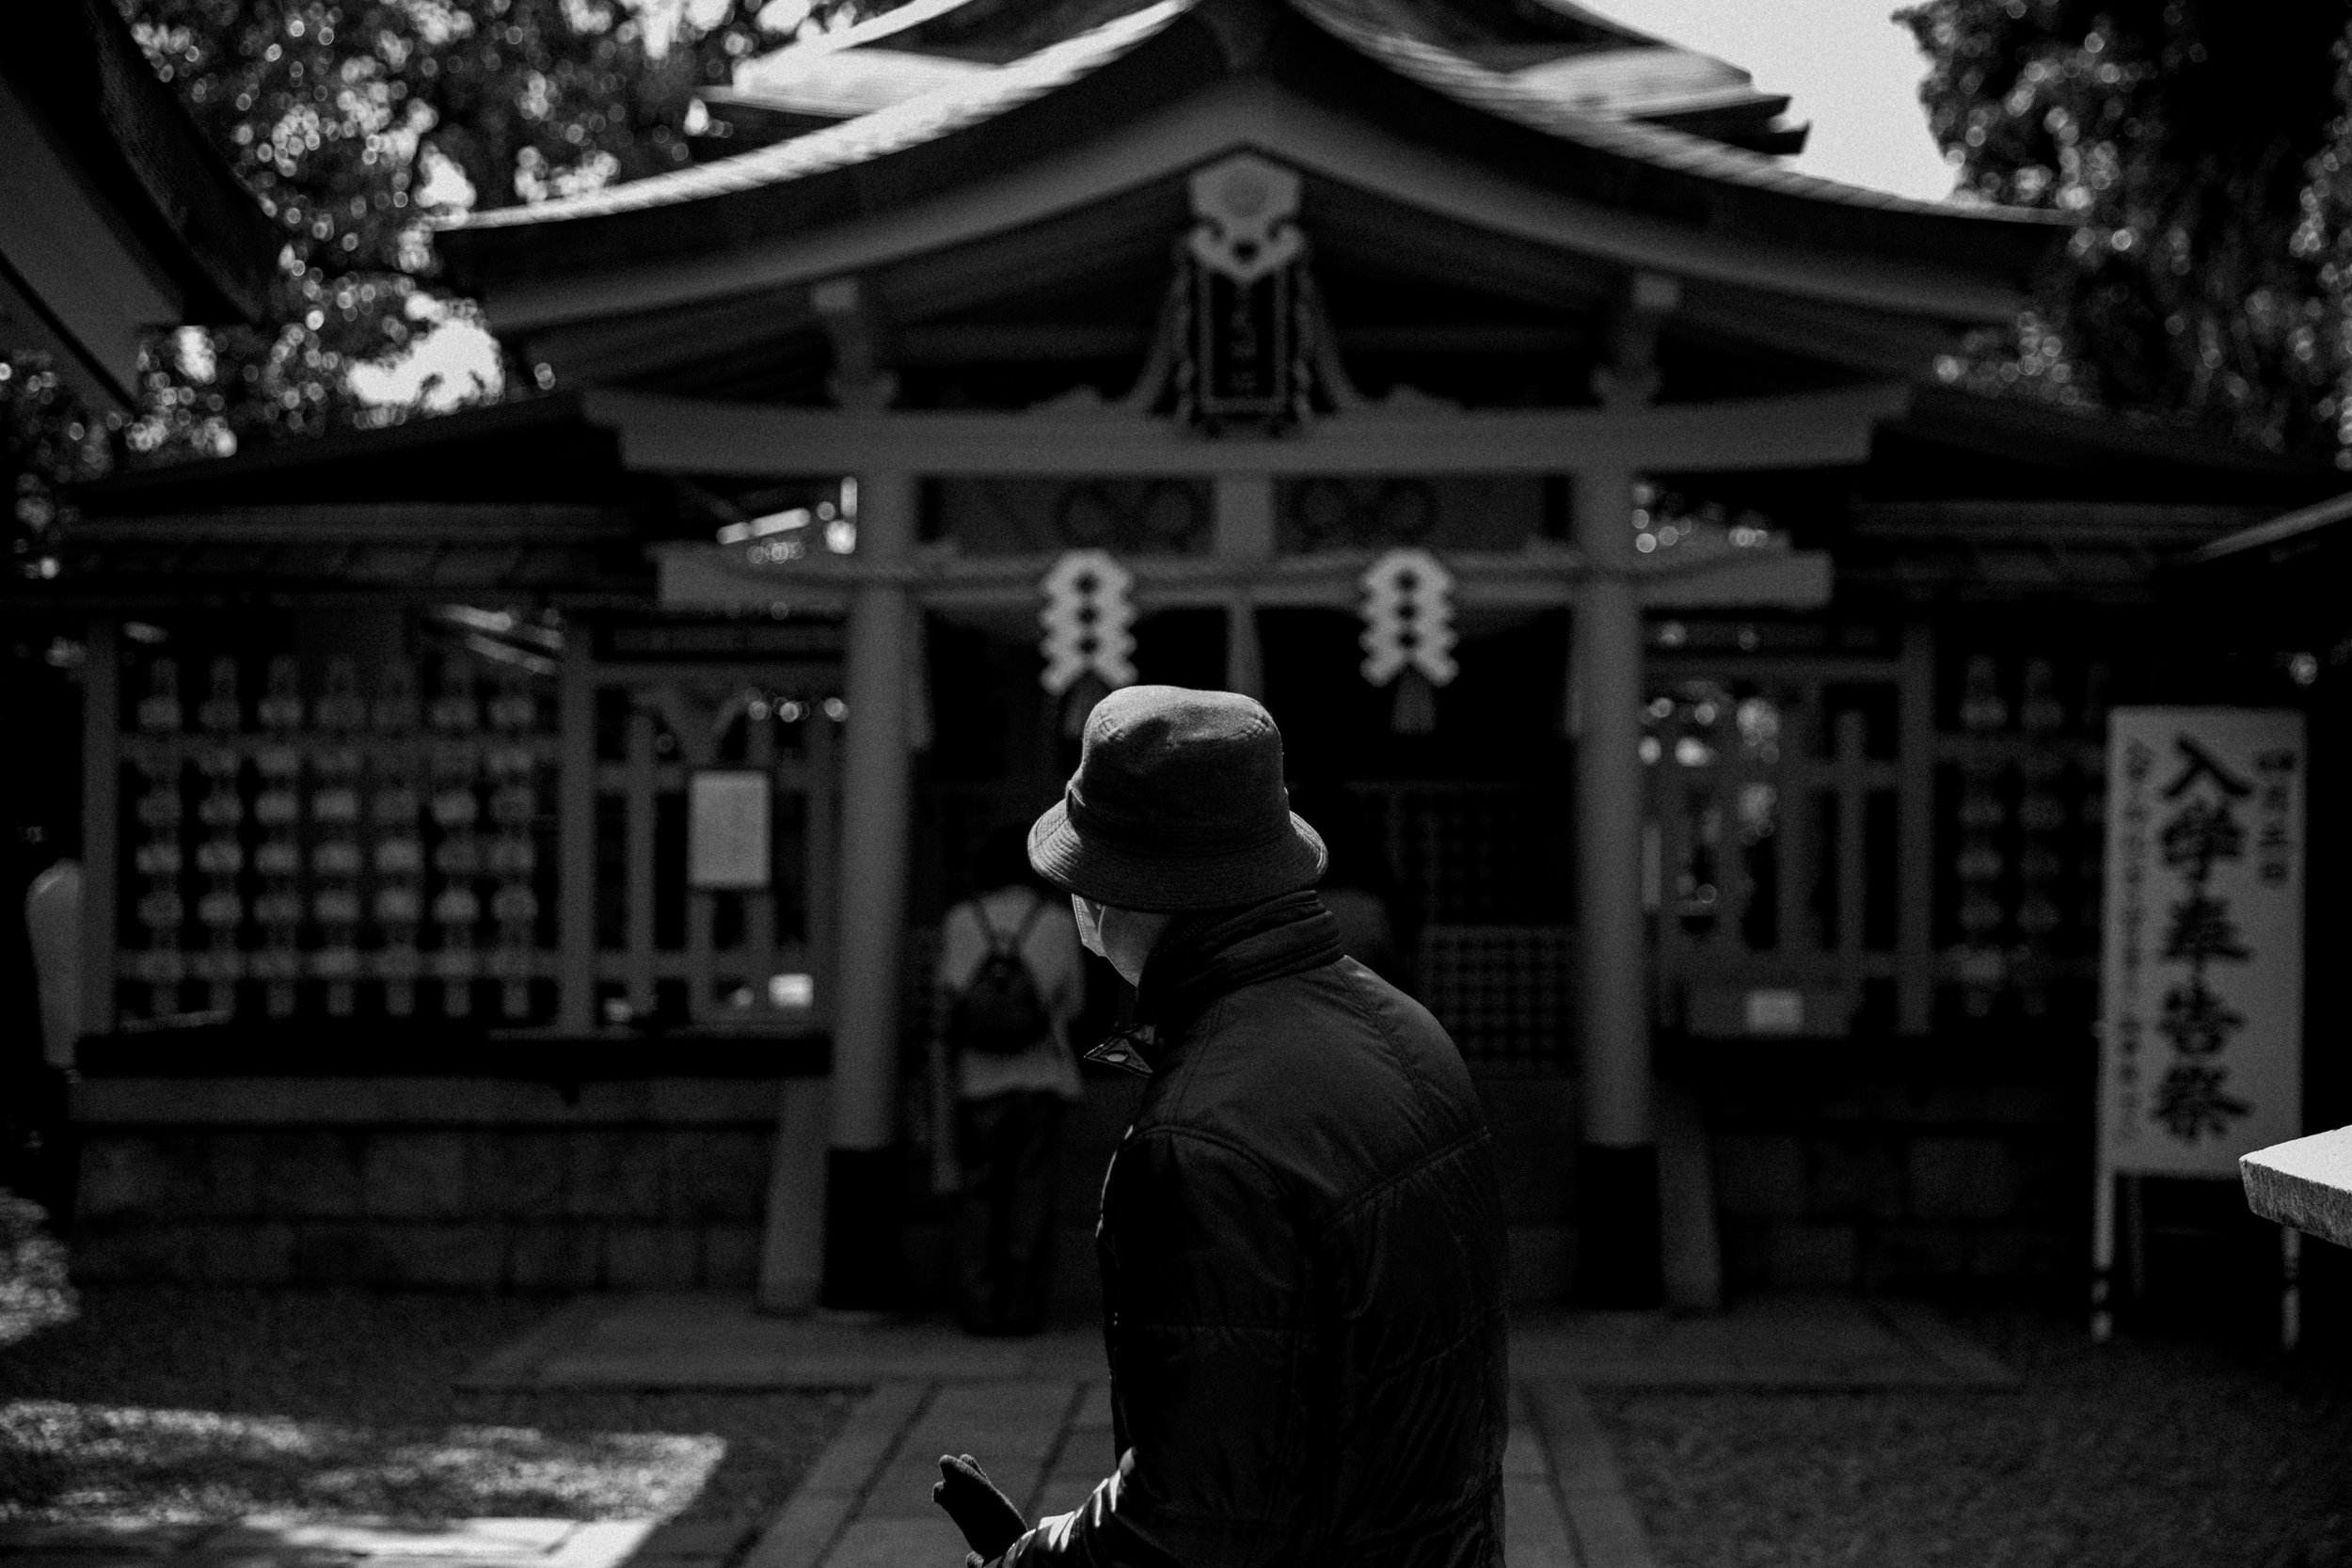 MikeSeehagel-commercial-lifestyle-travel-photography-Japan-44.jpg